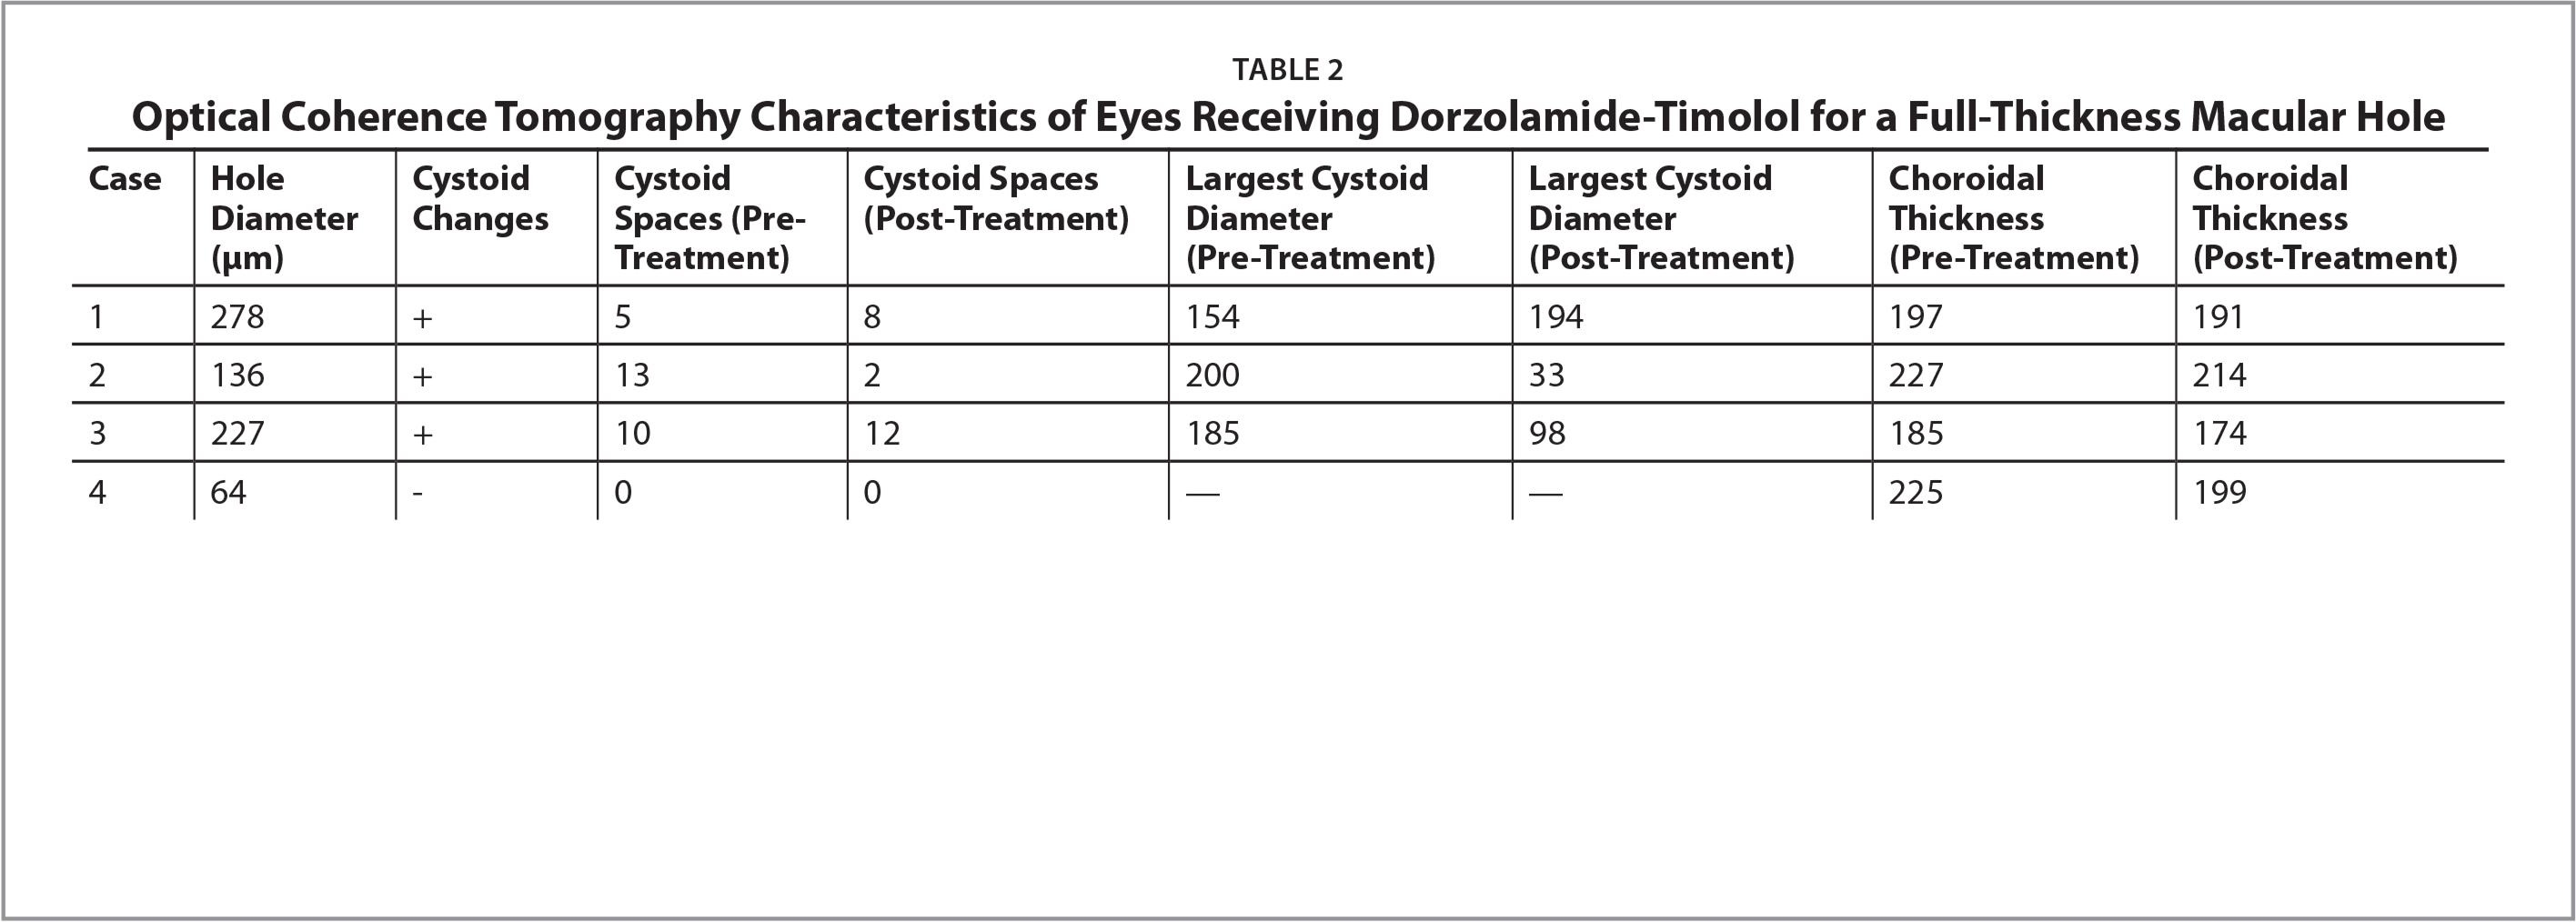 Optical Coherence Tomography Characteristics of Eyes Receiving Dorzolamide-Timolol for a Full-Thickness Macular Hole